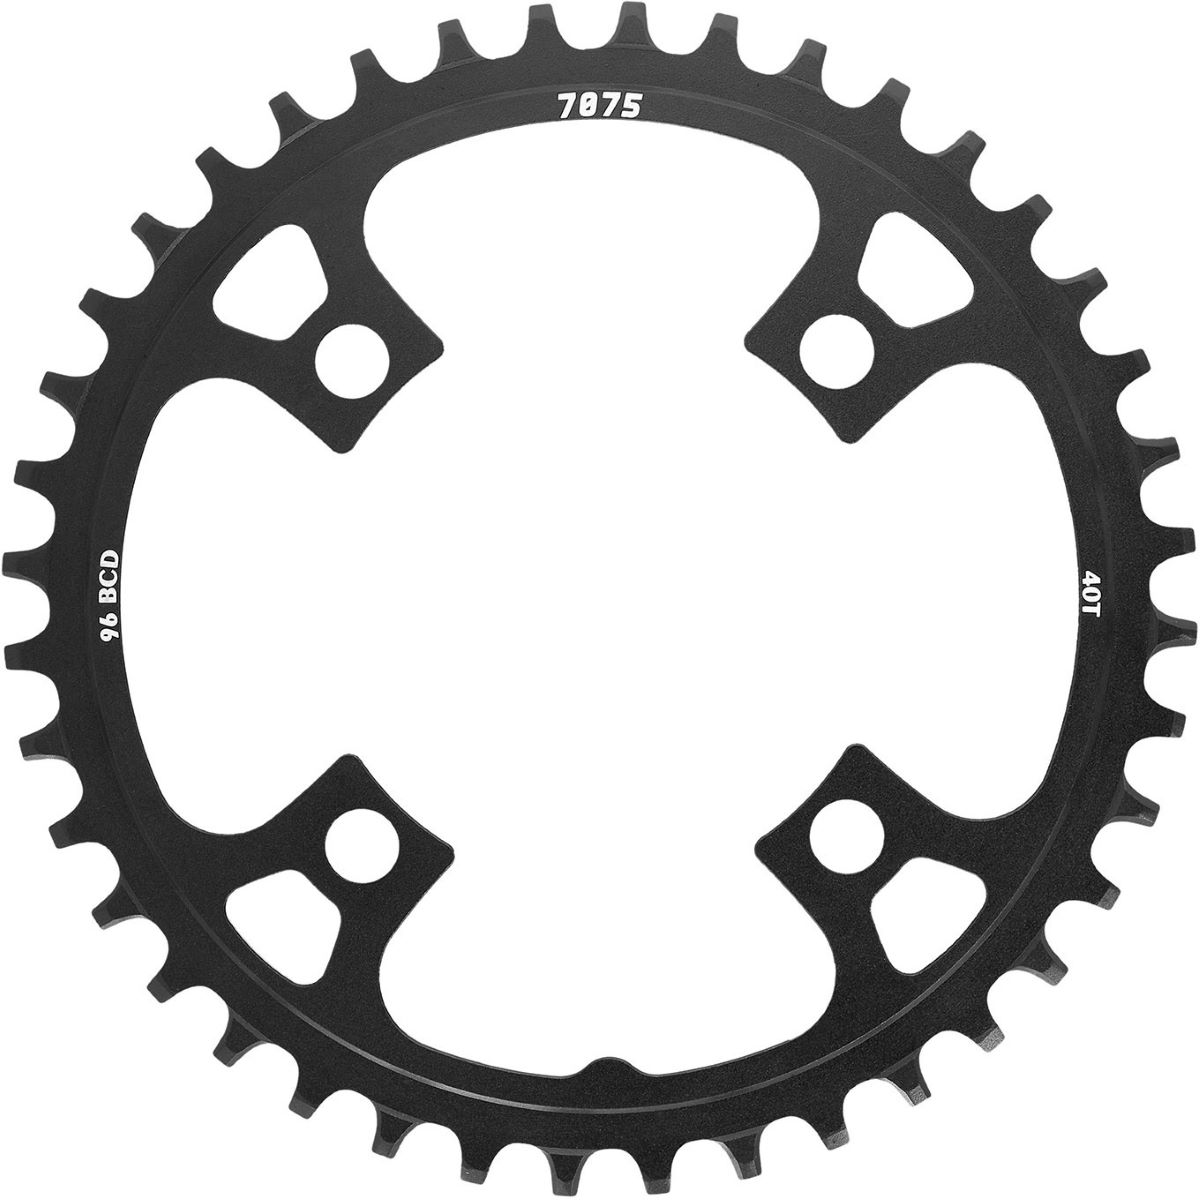 SunRace SunRace MX00 Alloy Chainrings Black   Chain Rings